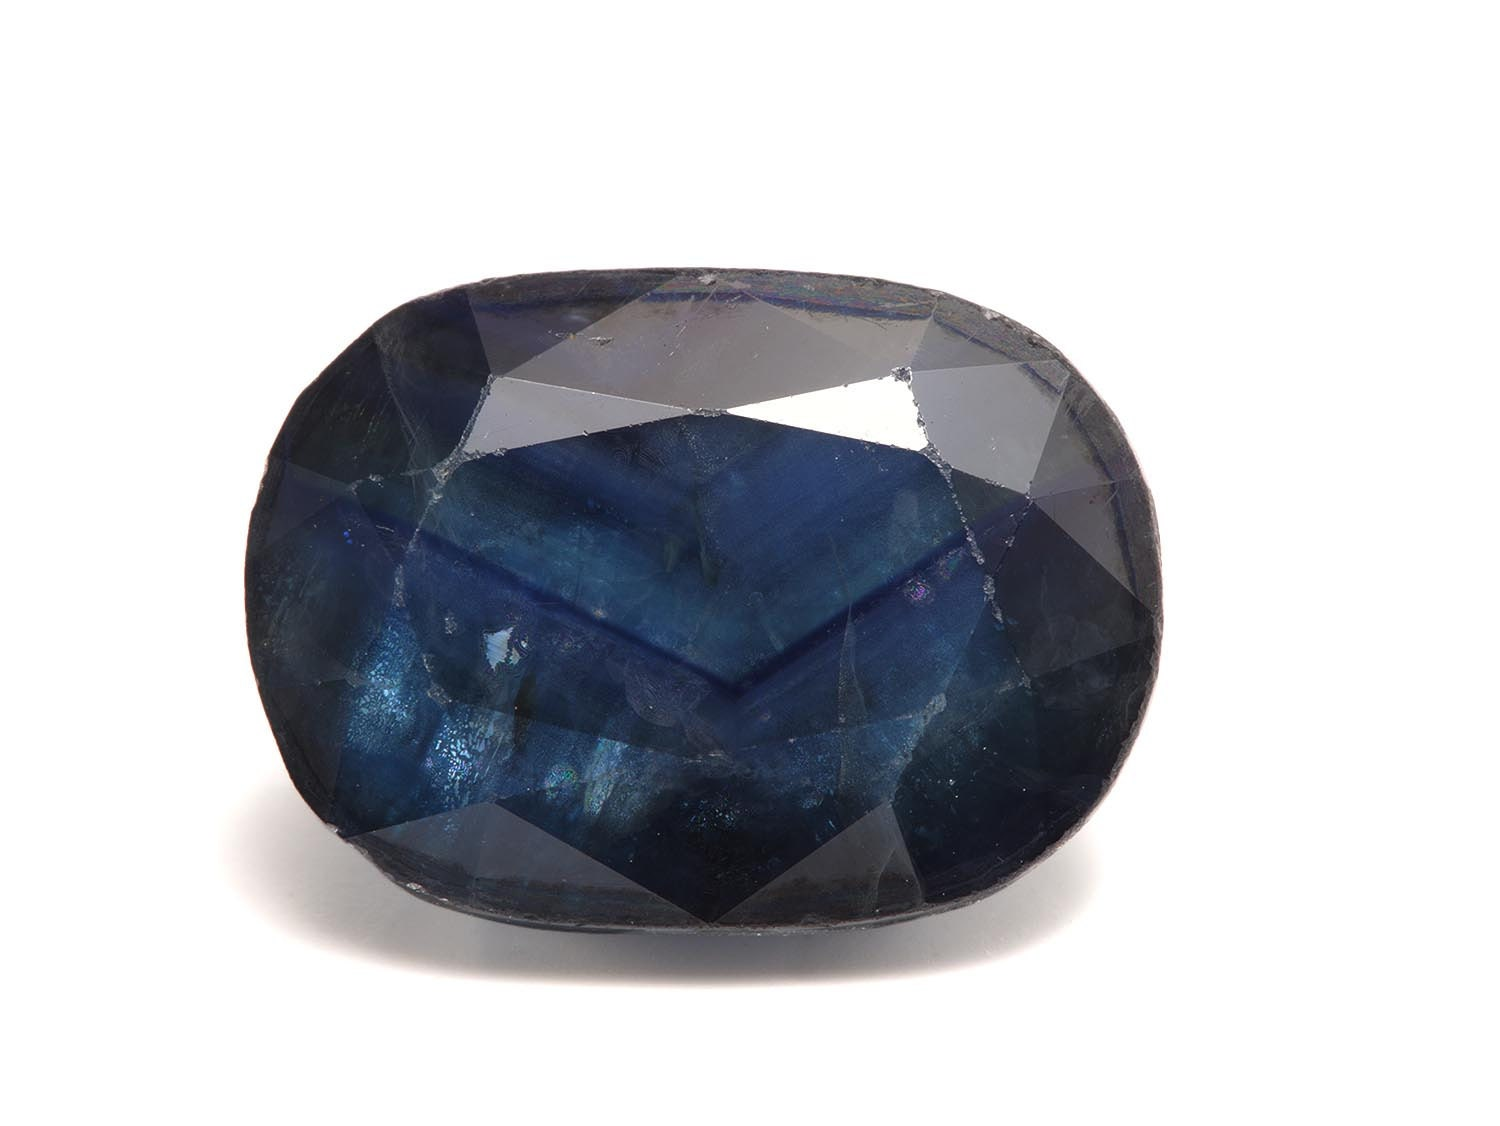 sapphire over ceylon to rings zoom magnify diamond click kjqzwuu large and image roll